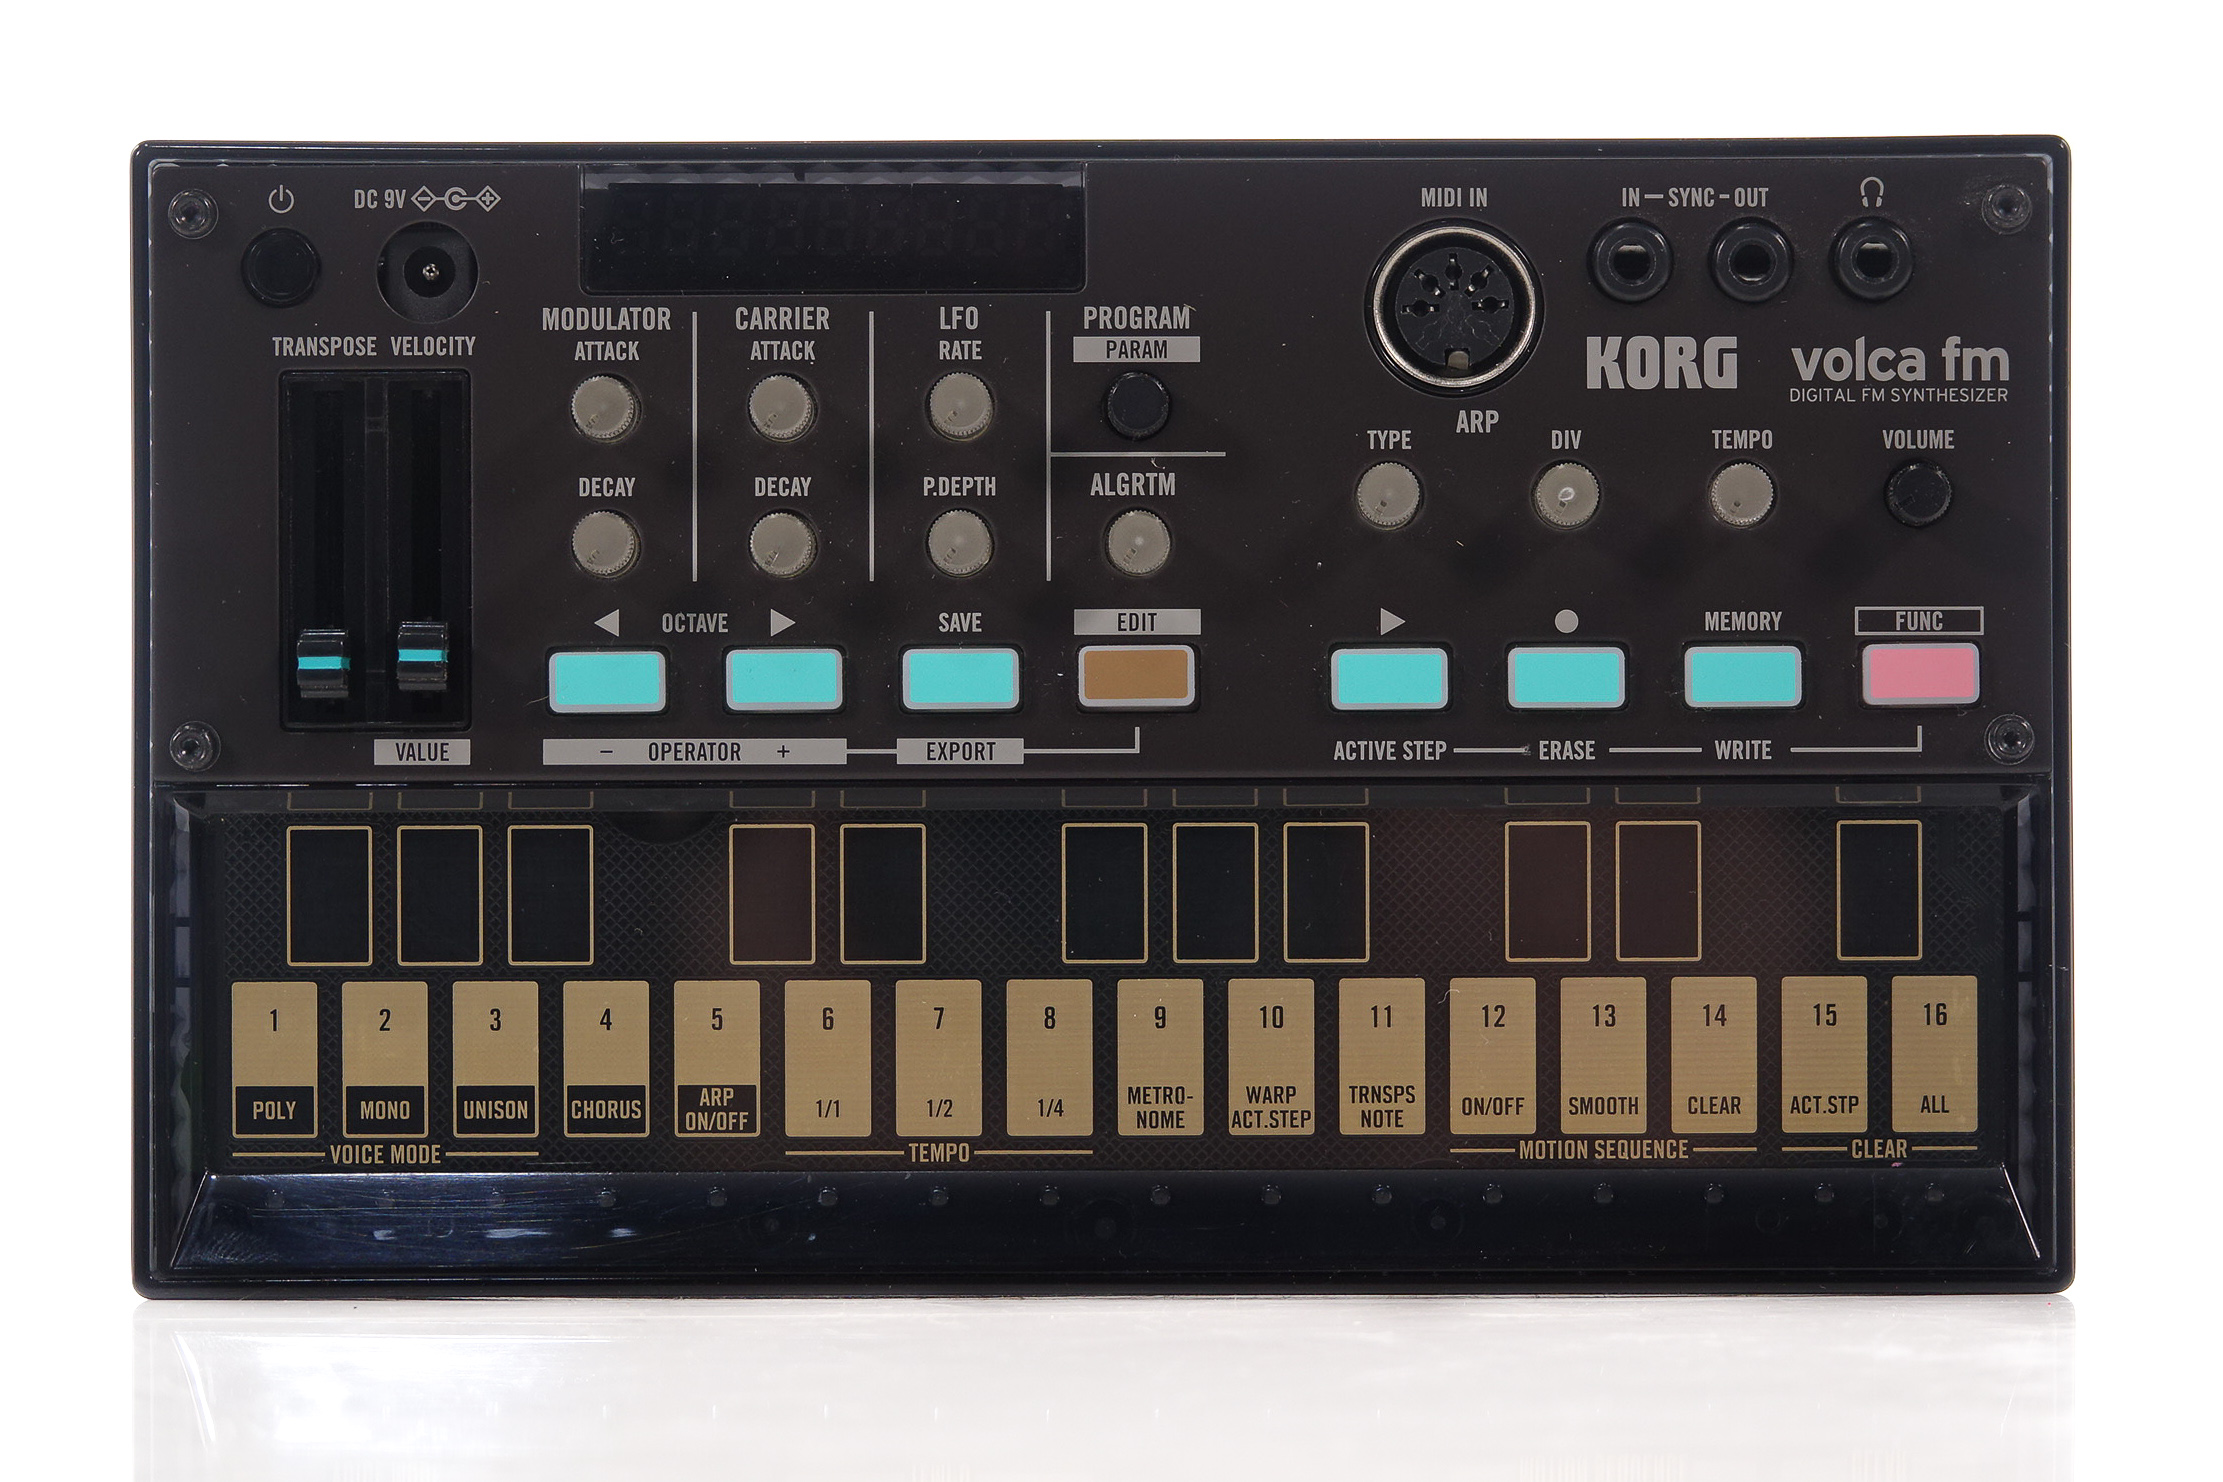 Pre-Loved Korg Rental from $7/month - Musicorp Australia